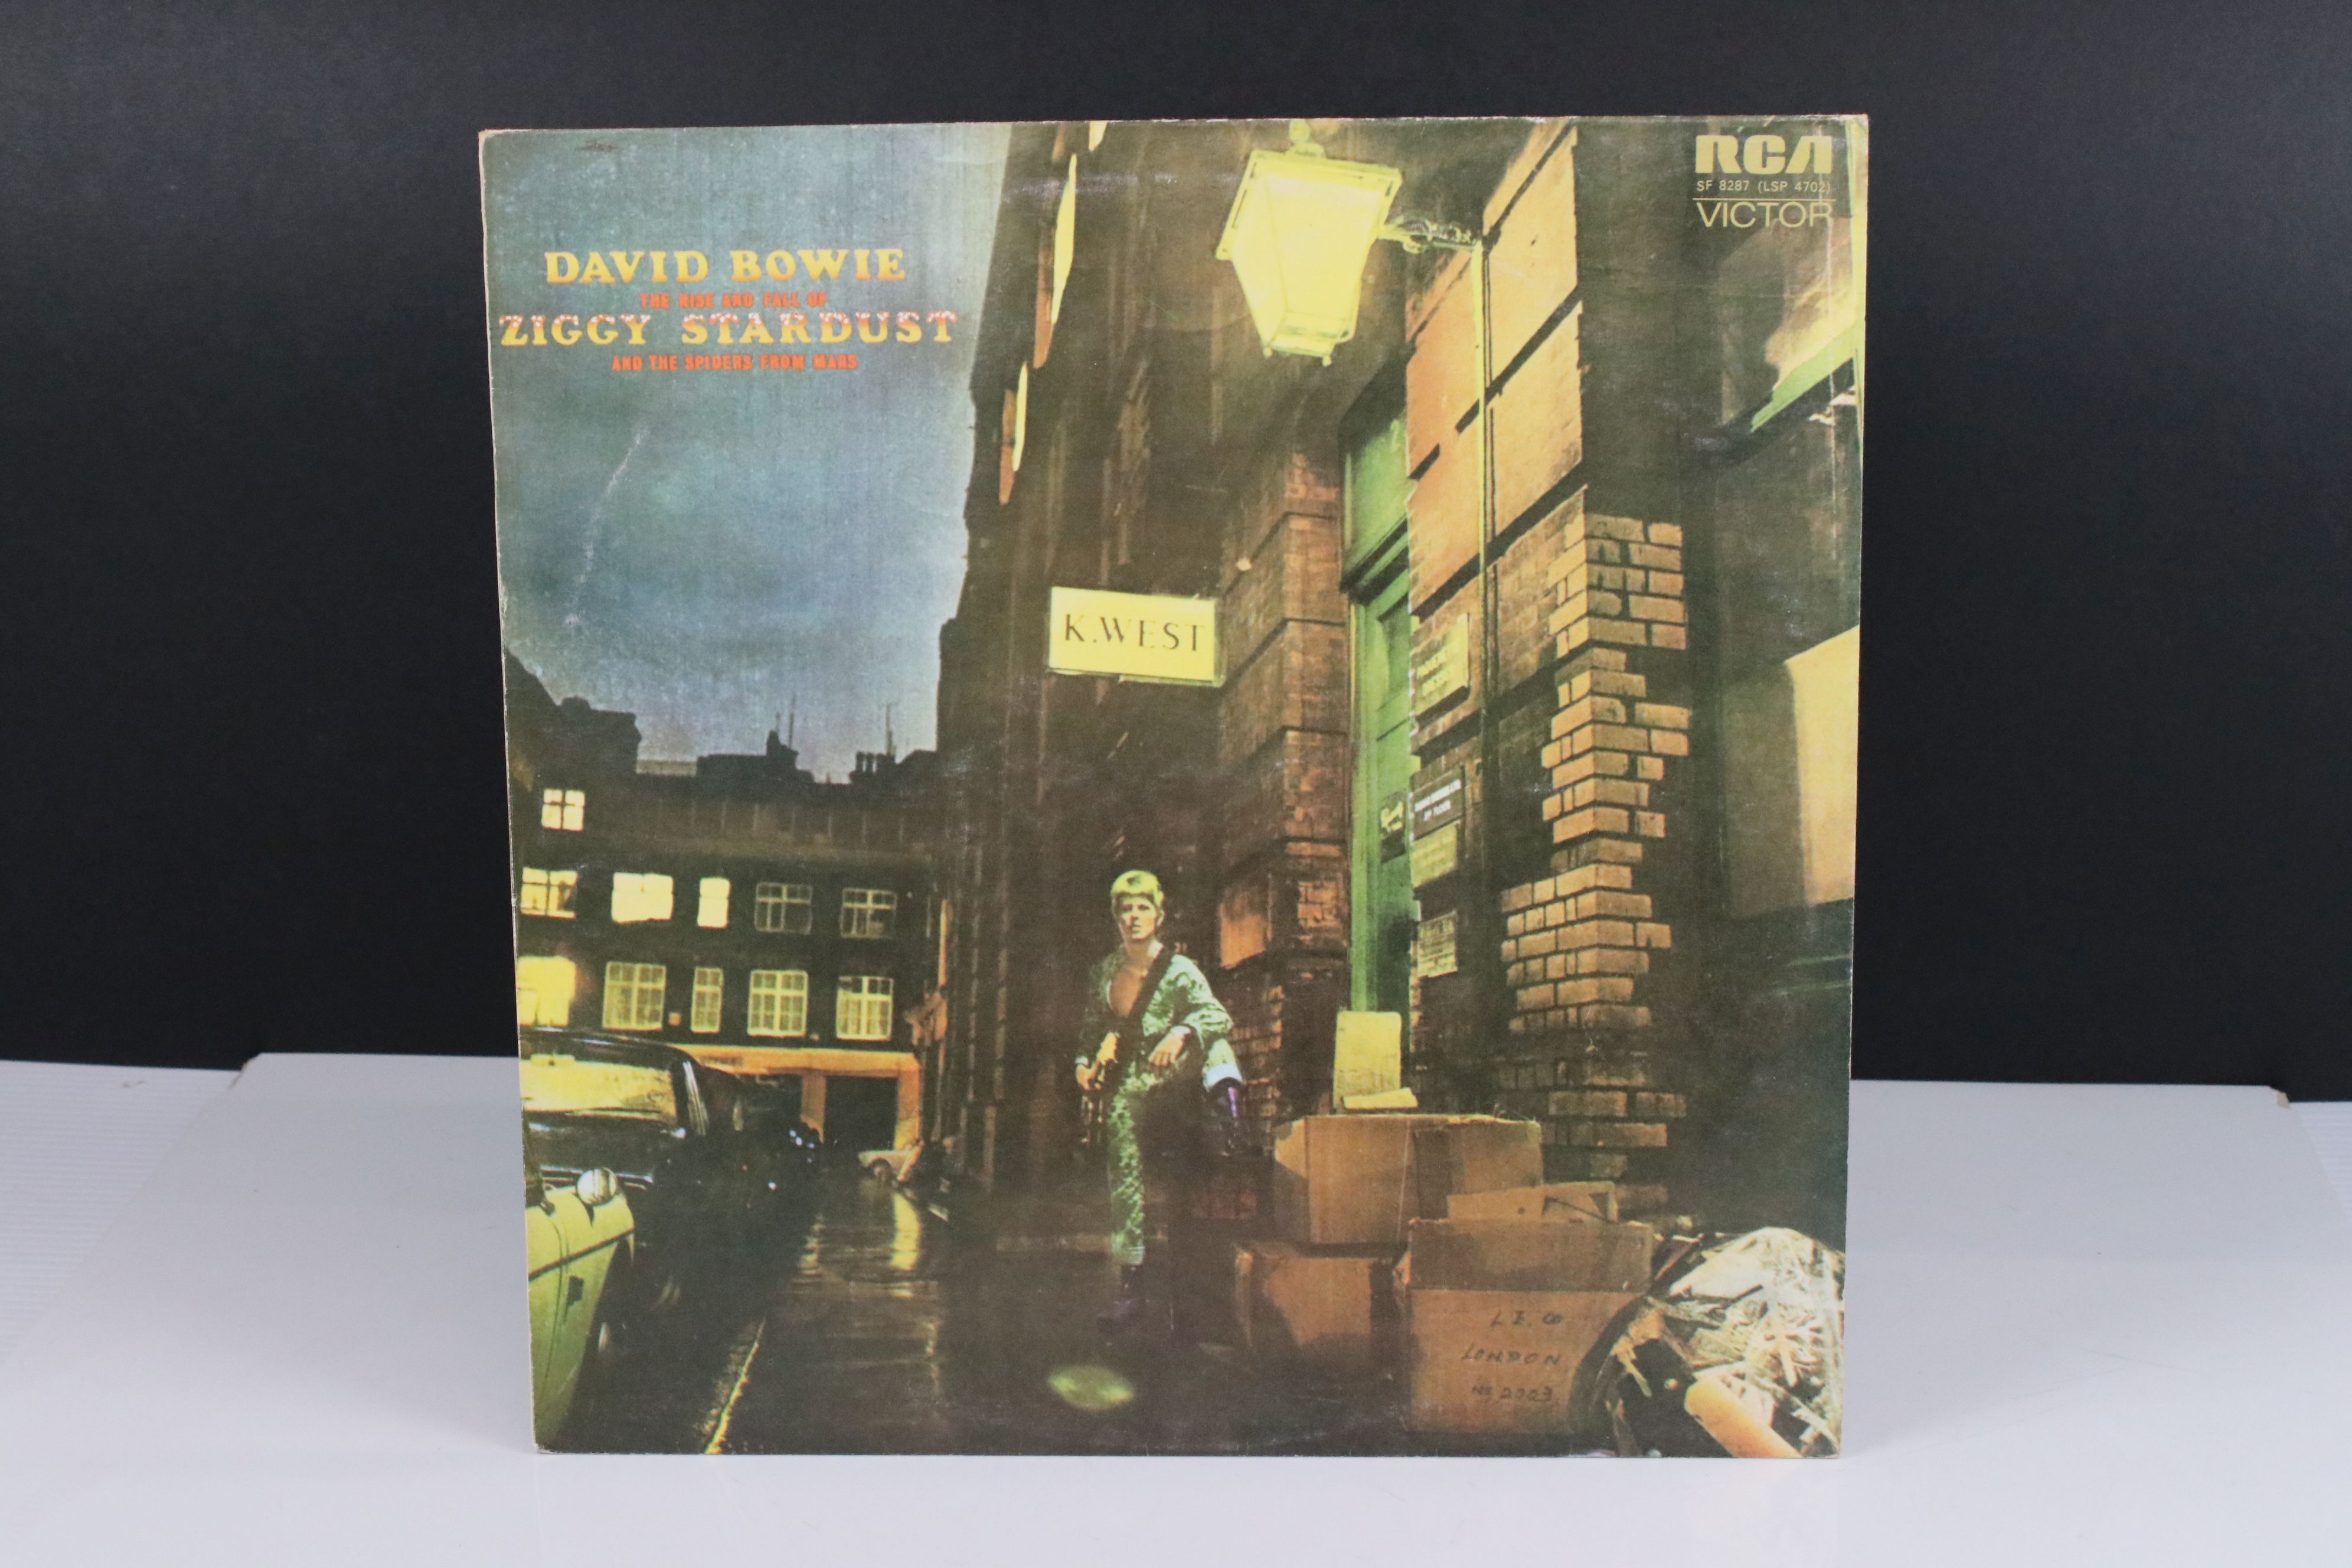 Vinyl - David Bowie The Rise and Fall of Ziggy Stardust LP on RCA8287, shiny orange RCA label, - Image 6 of 7